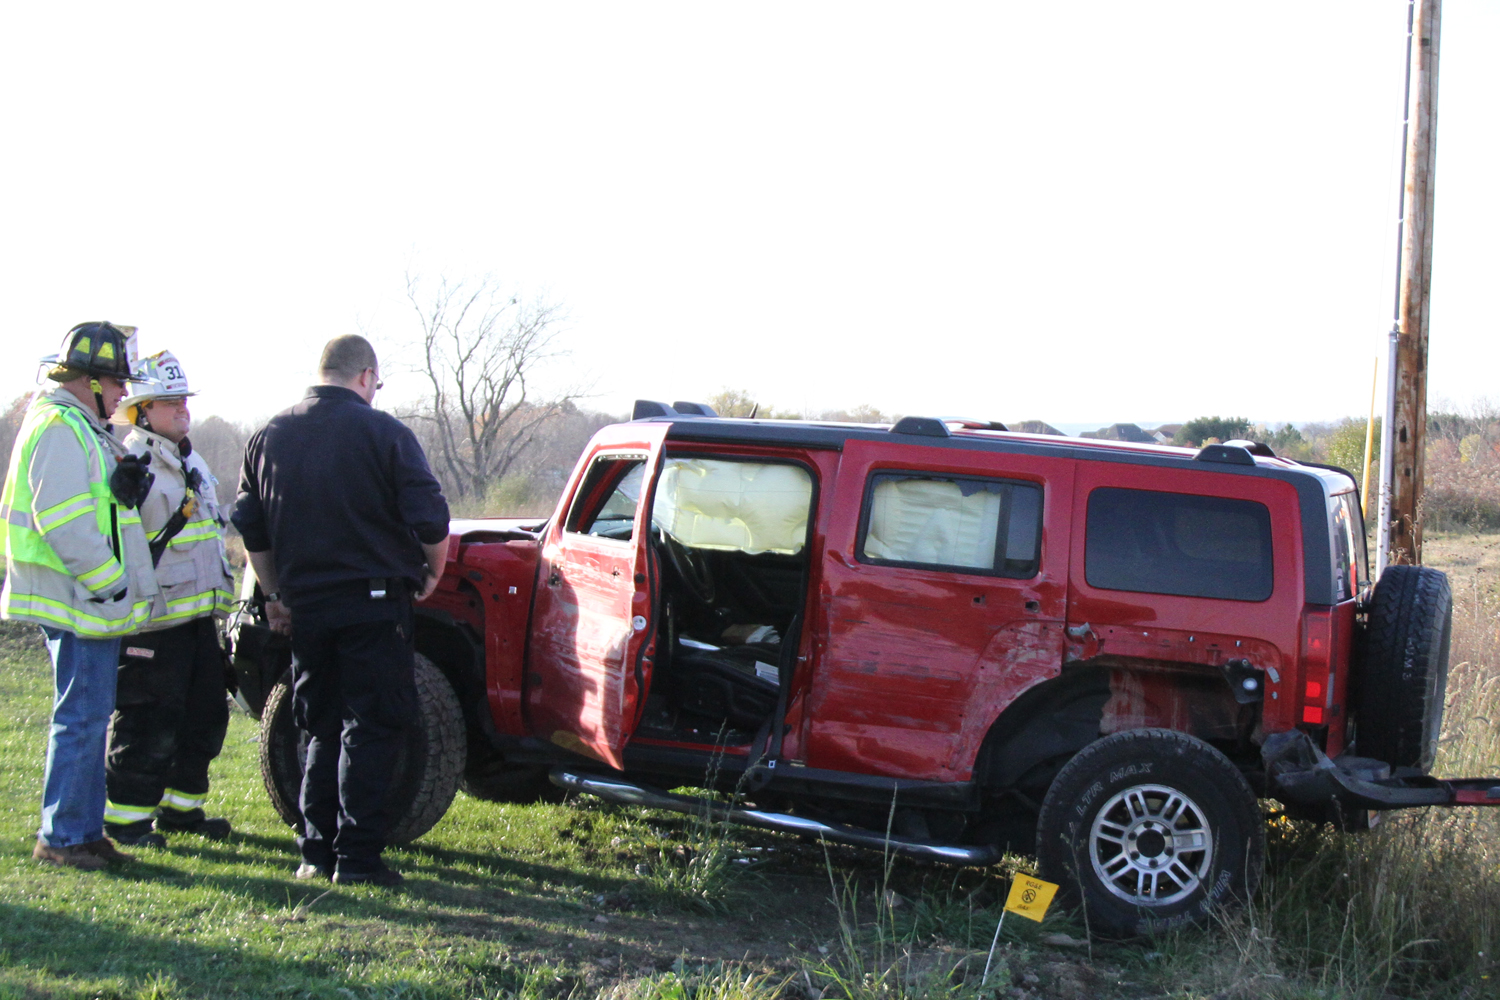 Wake-Up Call for Driver After Brush with Pole